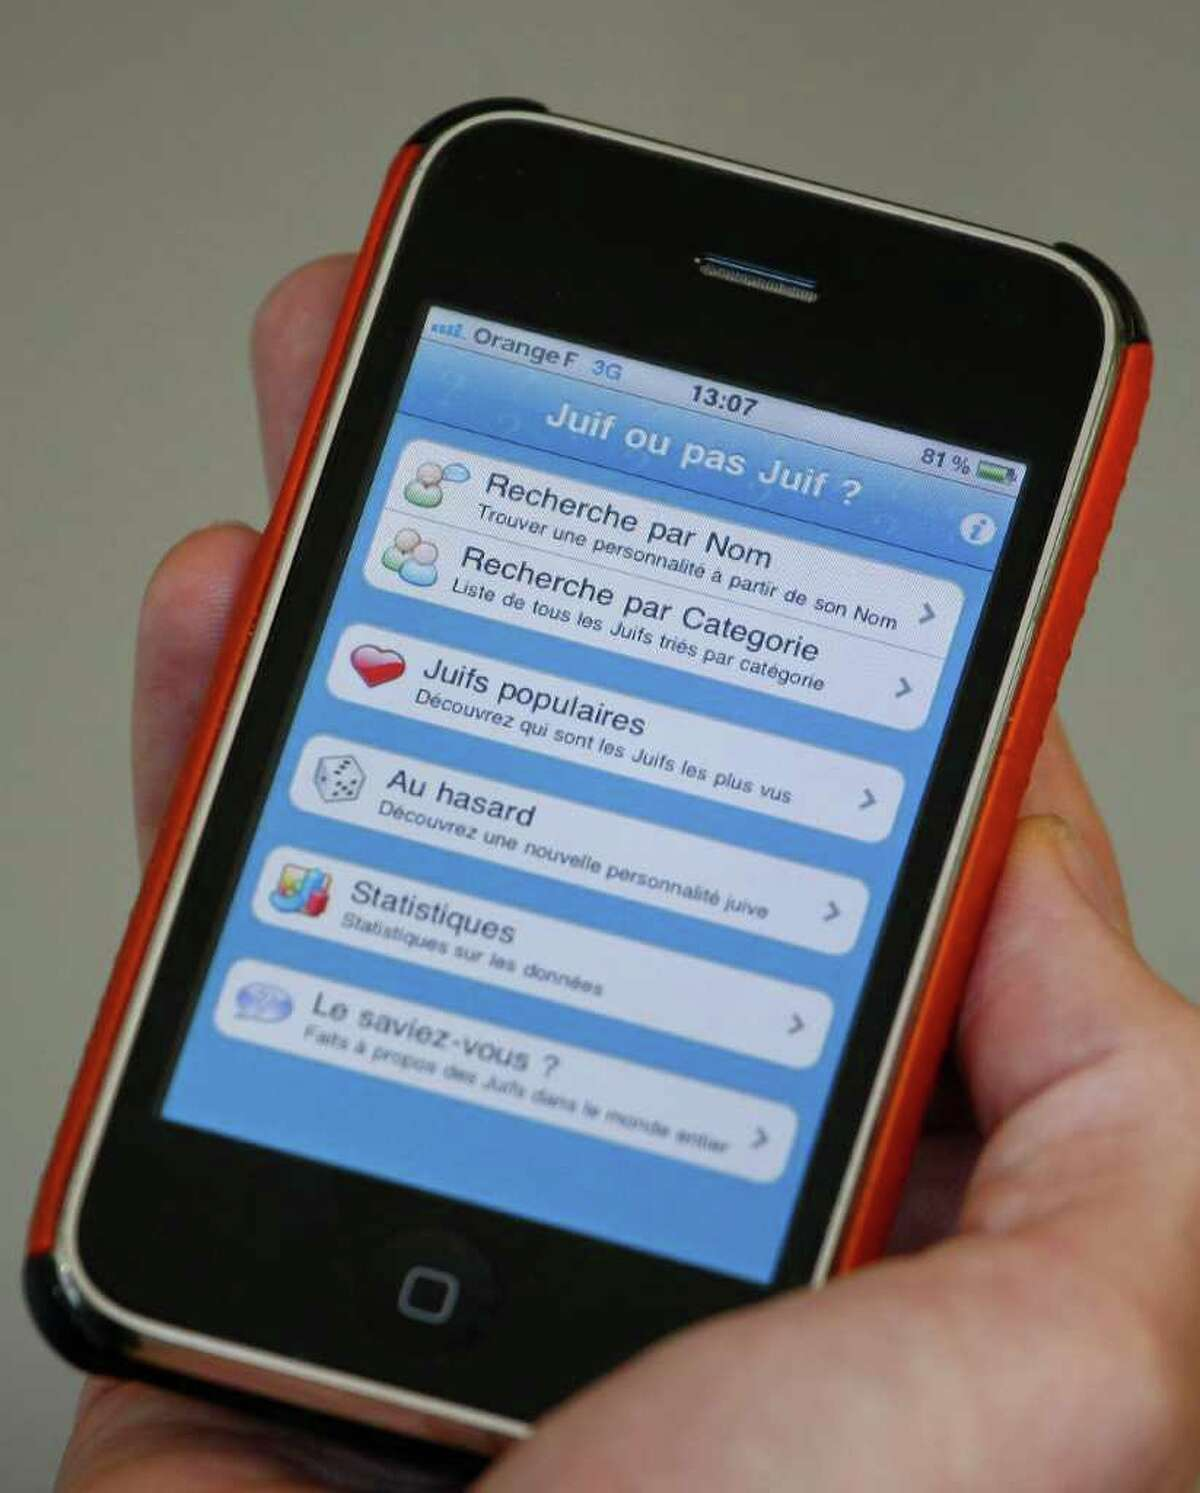 The Iphone application